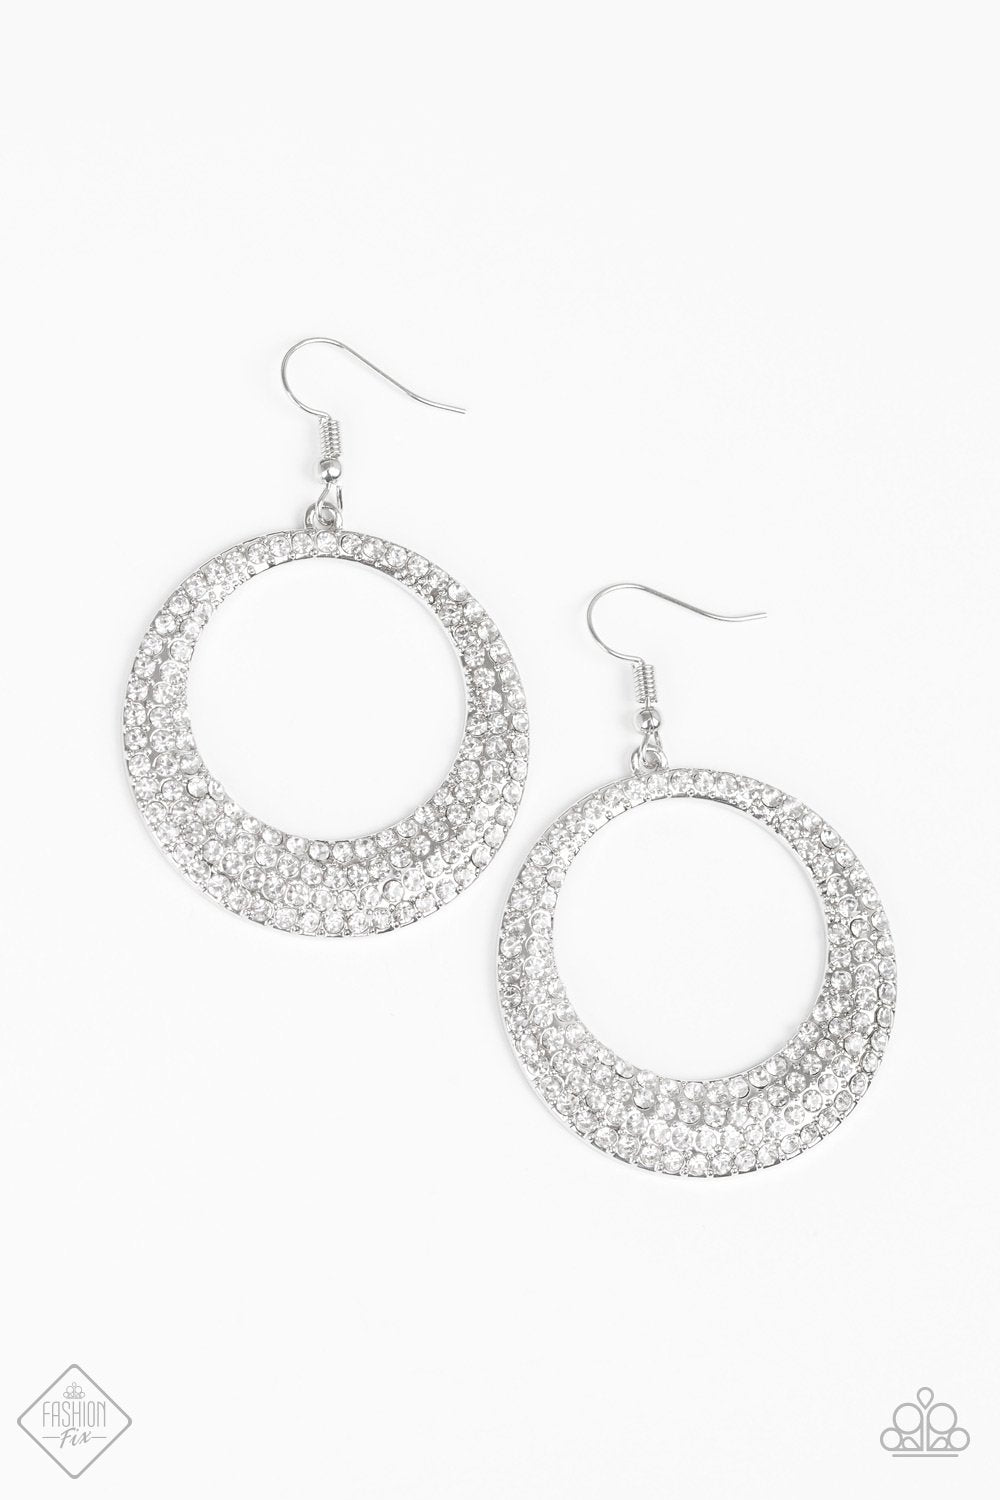 Paparazzi Accessories Very Victorious - White Earring - Be Adored Jewelry